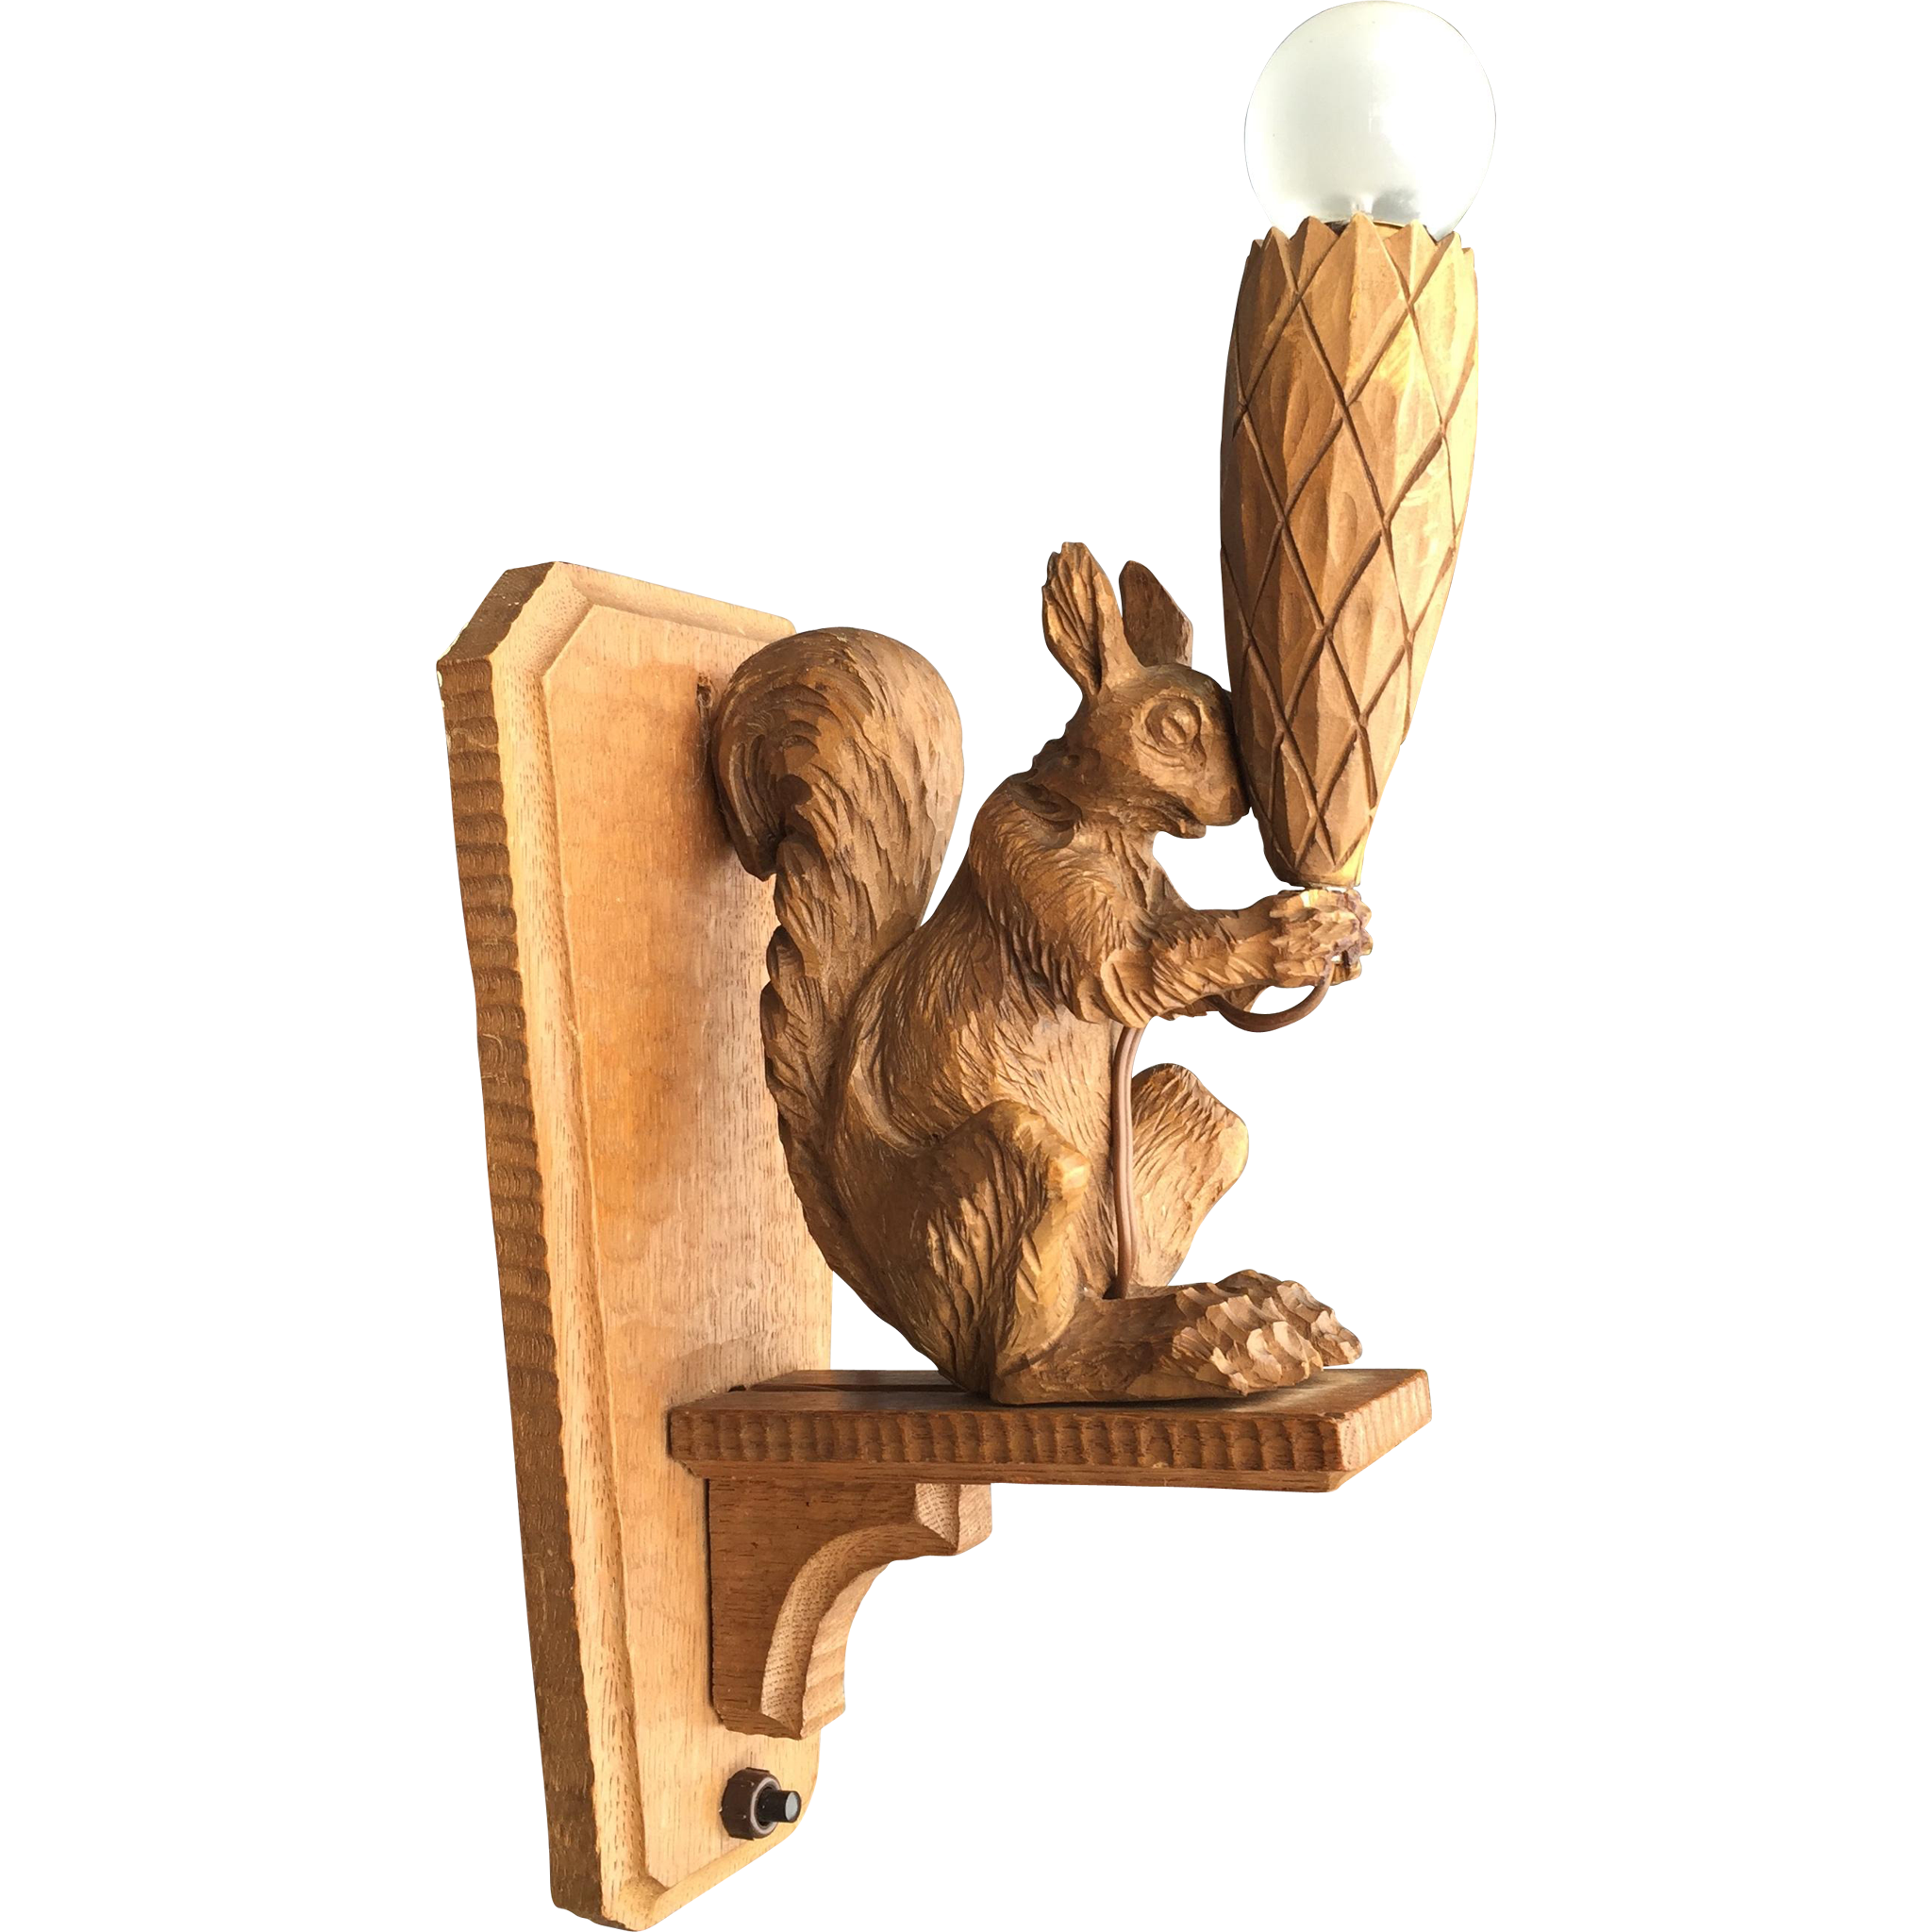 Vintage Wooden Wall Sconce with Squirrel